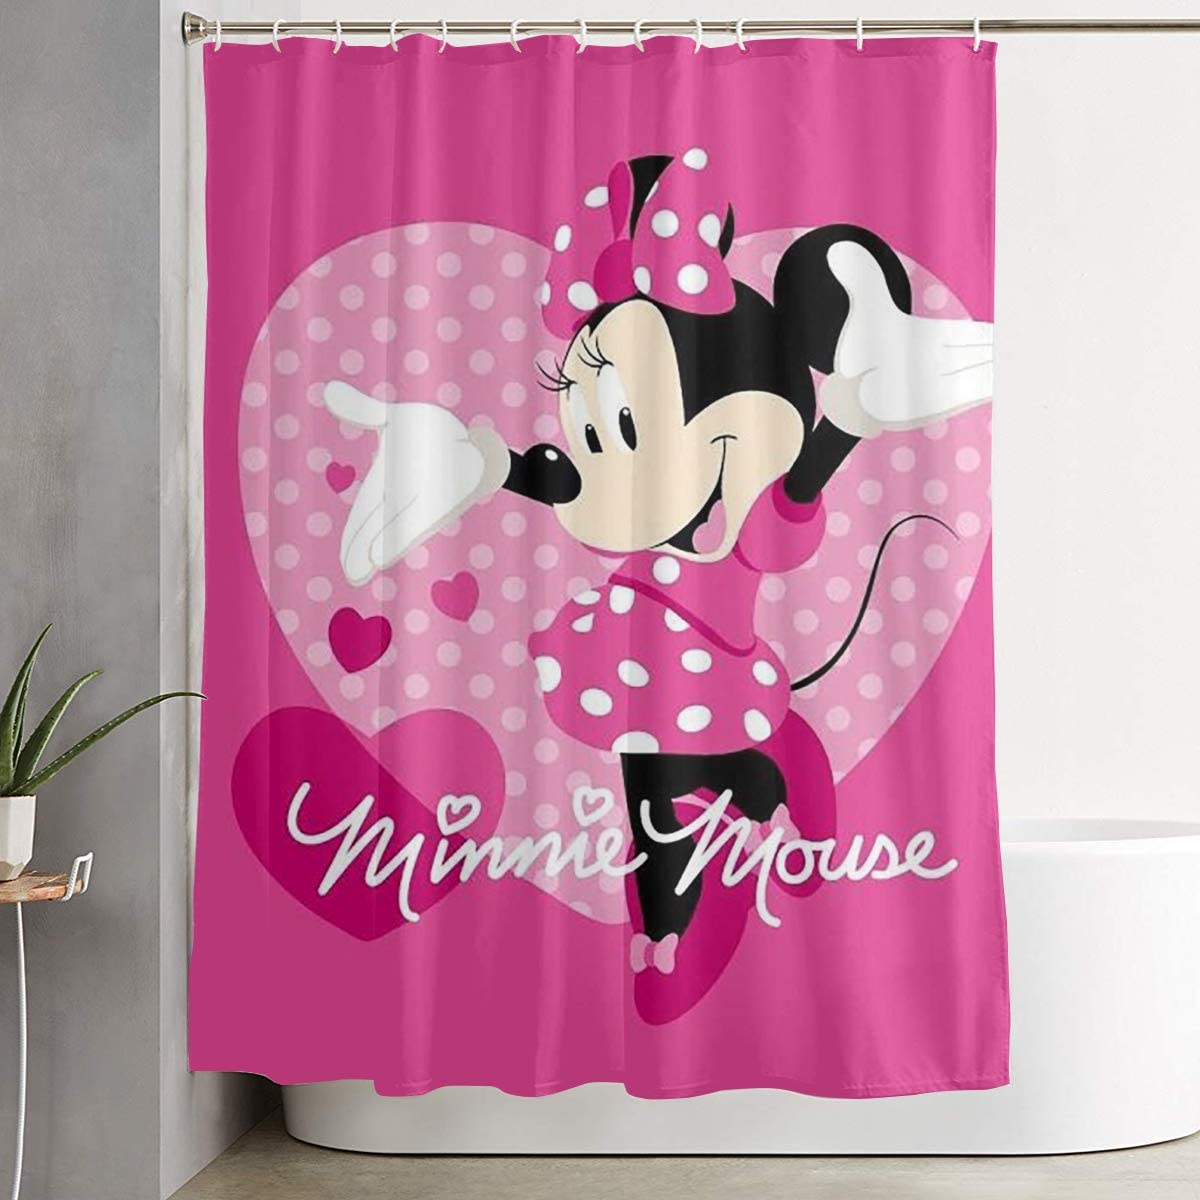 Stylish Shower Curtain Minnie Mouse Love Printing Waterproof Bathroom Curtain 60 X 72 Inches